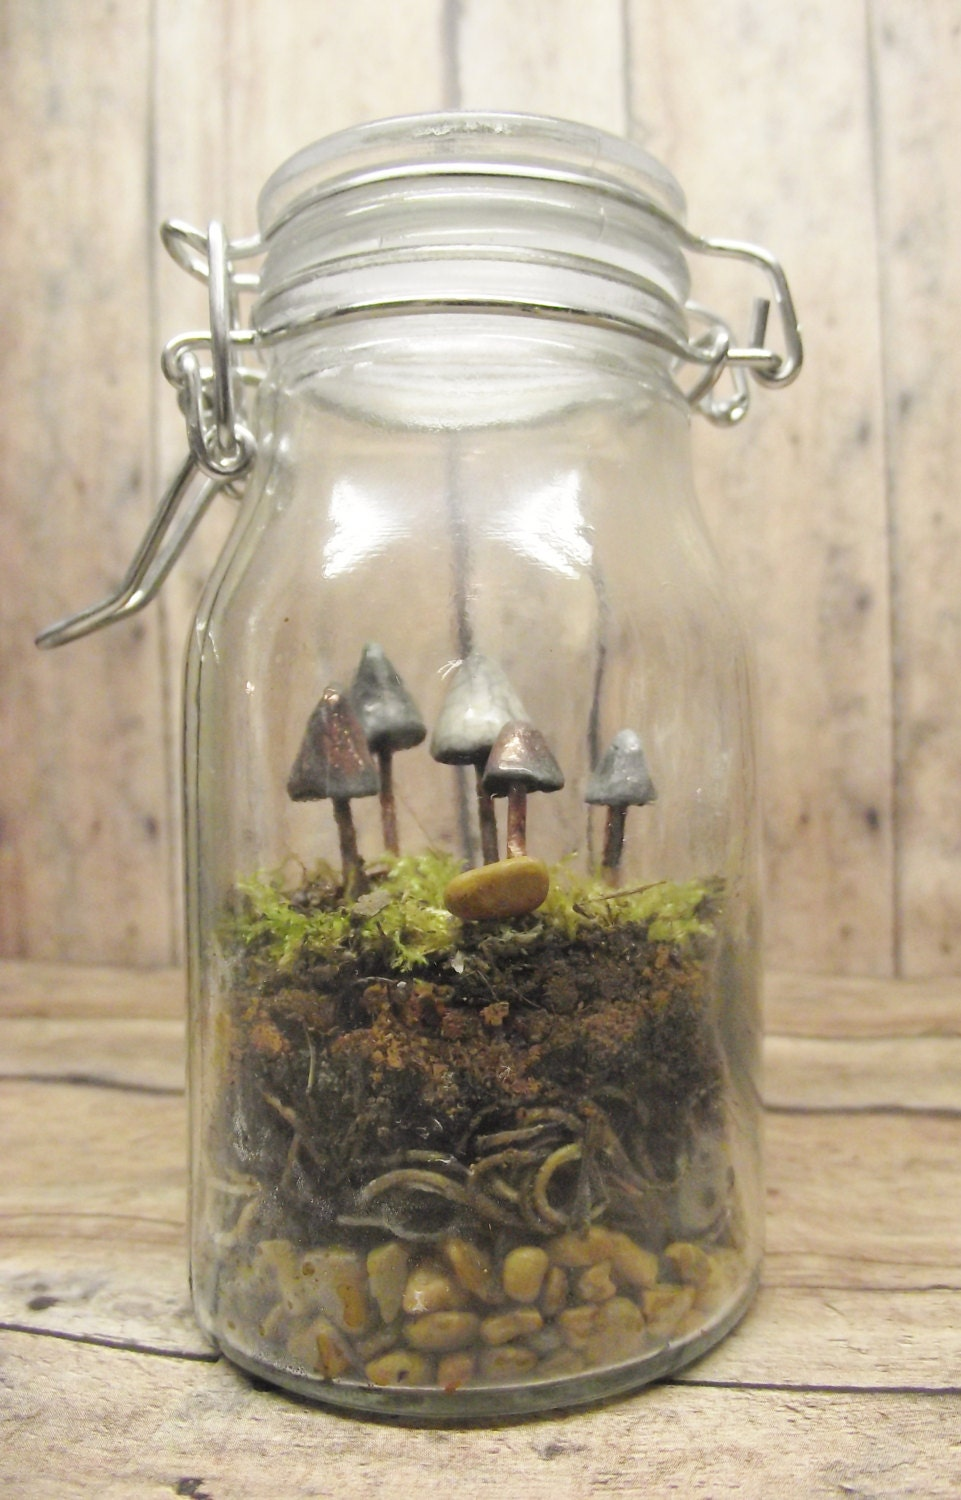 Terrarium Supplies, DIY Terrarium Kit, Glow in the Dark, Mushroom Terrarium, Garden Party, Mushroom specimen, Glass Terrarium, Jar plant